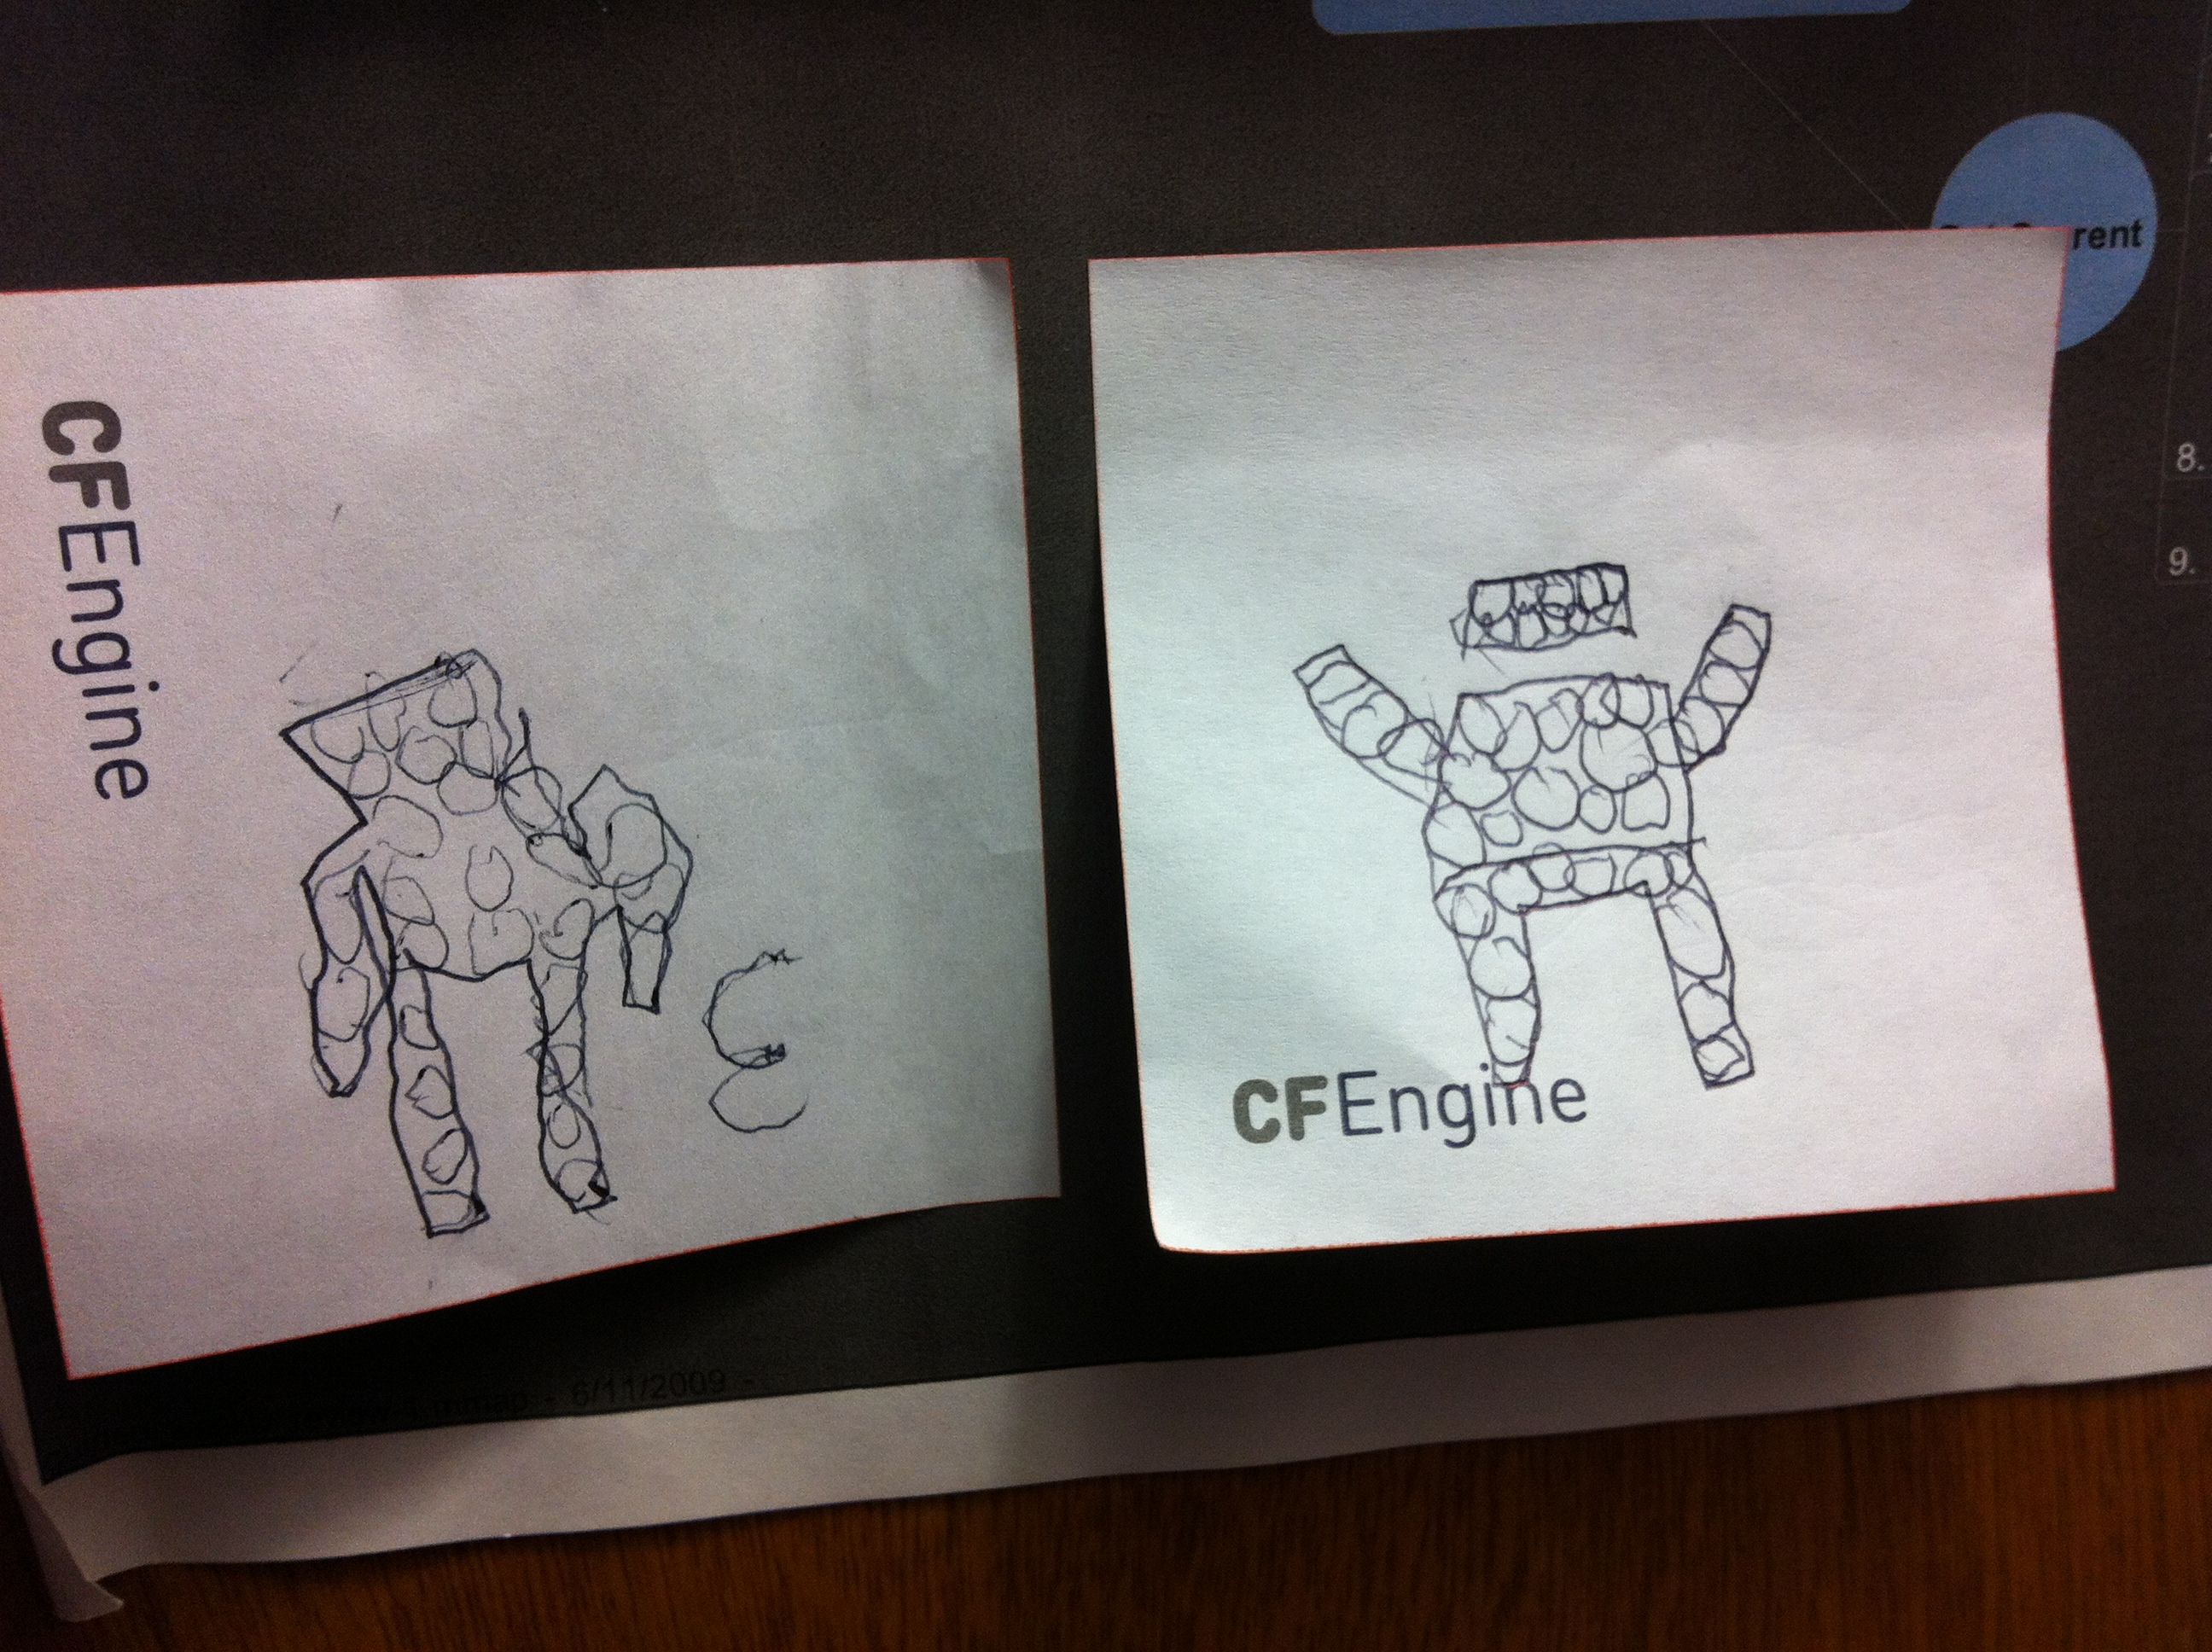 image from The CFEngine agent, as drawn by my 6-year-old daughter :)